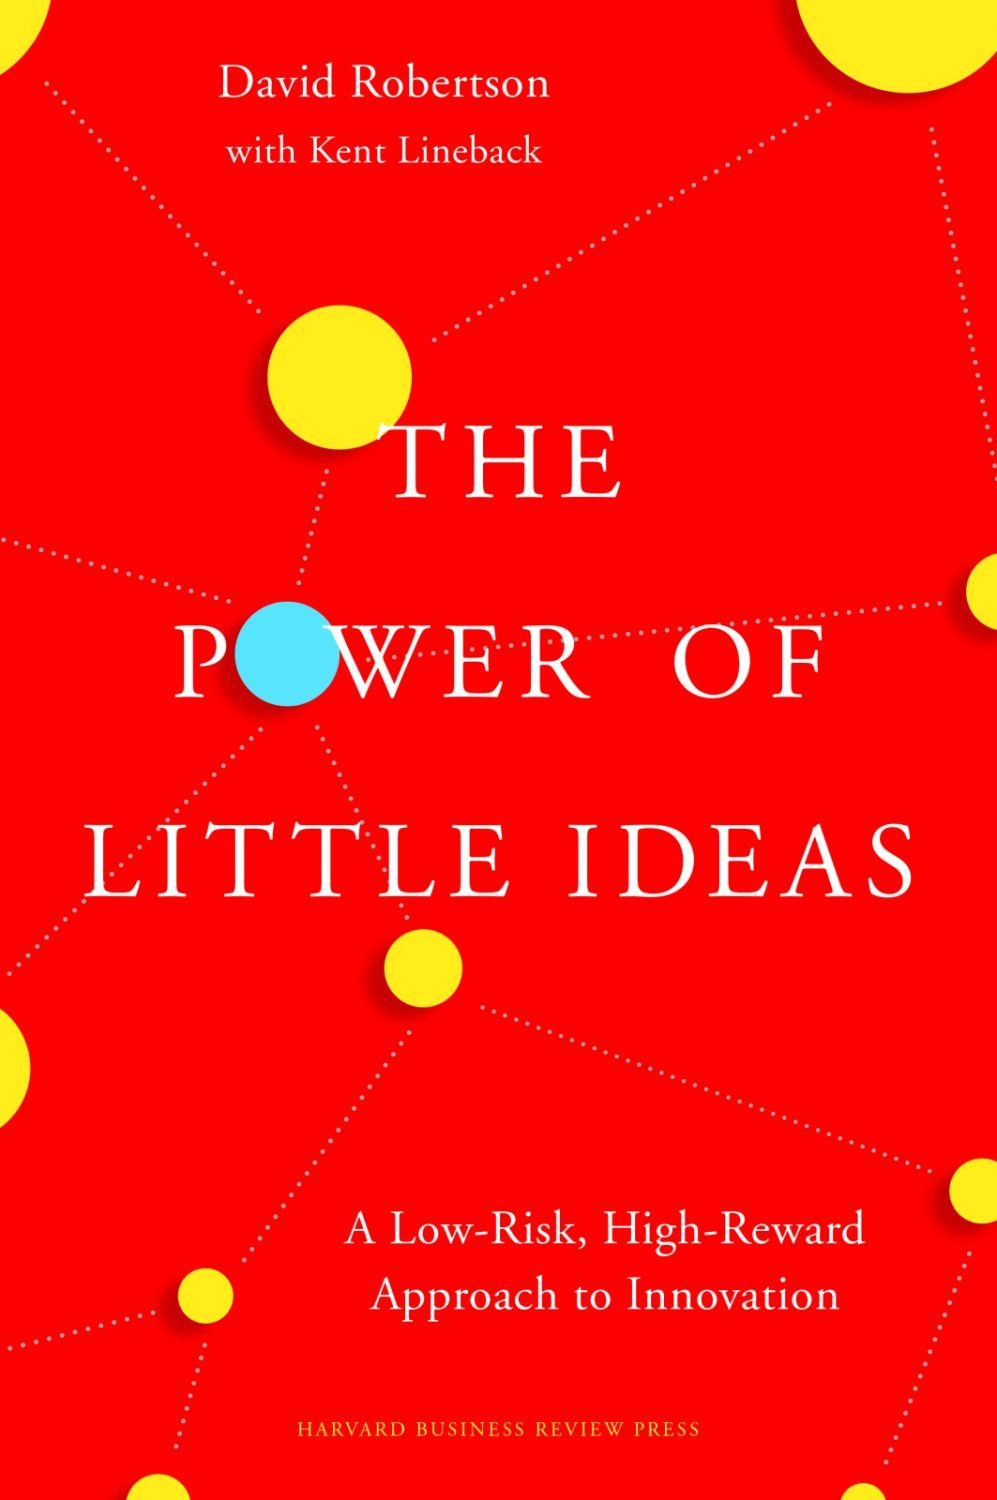 Download ebook The Power of Little Ideas